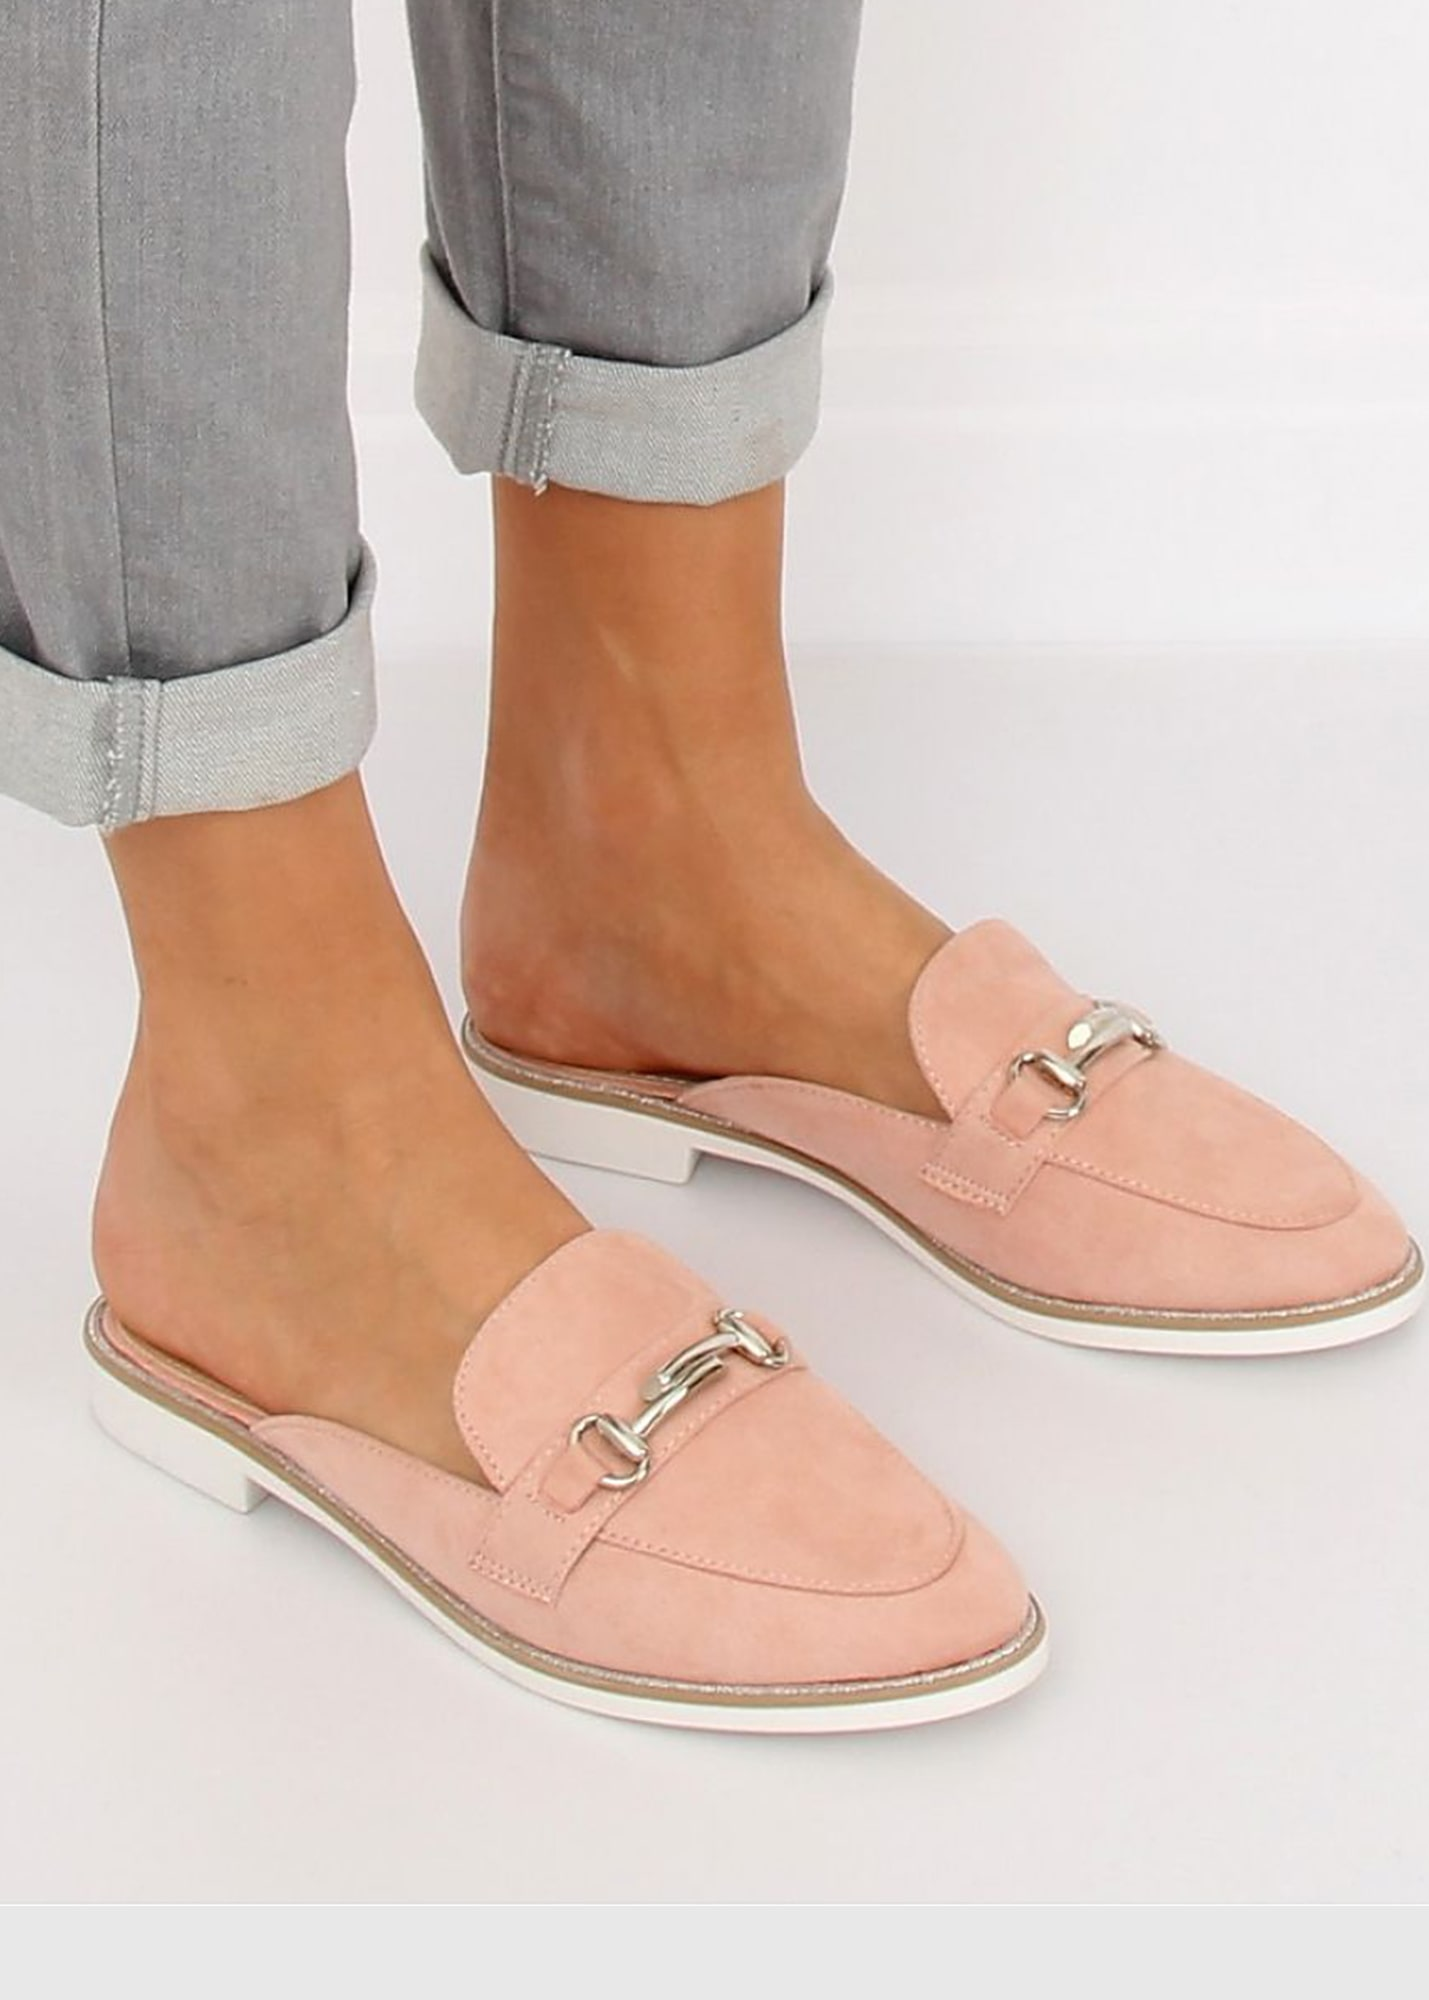 Photo №2 Ricarda pink metal buckles loafers